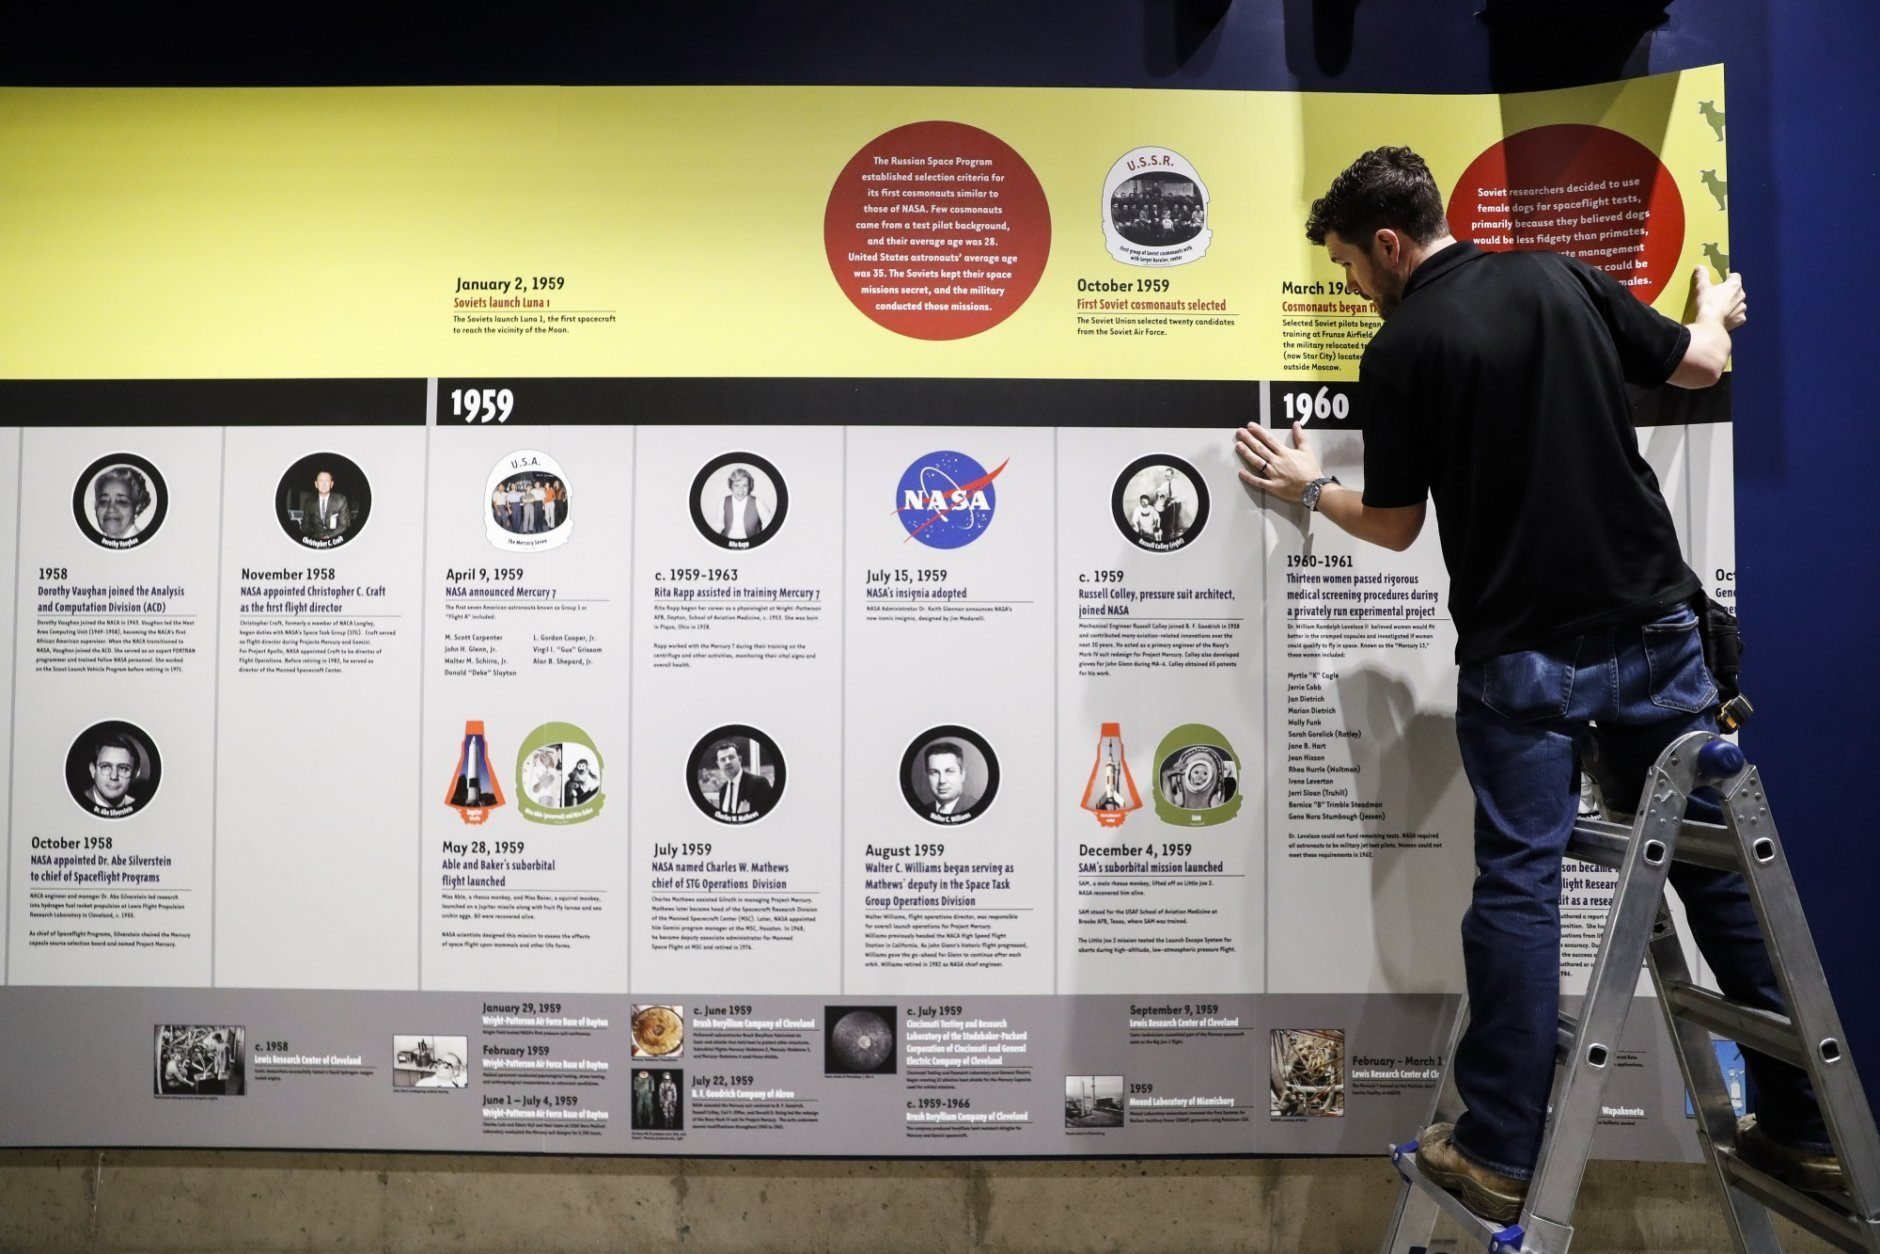 A workman prepares a display at the Armstrong Air & Space Museum, Wednesday, June 26, 2019, in Wapakoneta, Ohio. Very down to earth about most things, folks in this small western Ohio city are over the moon as they get ready to celebrate the 50th anniversary of the day they watched their hometown hero along with the world. Neil Armstrong put Wapakoneta  on the map in July 1969 when he became the first human to walk on the moon. (AP Photo/John Minchillo)